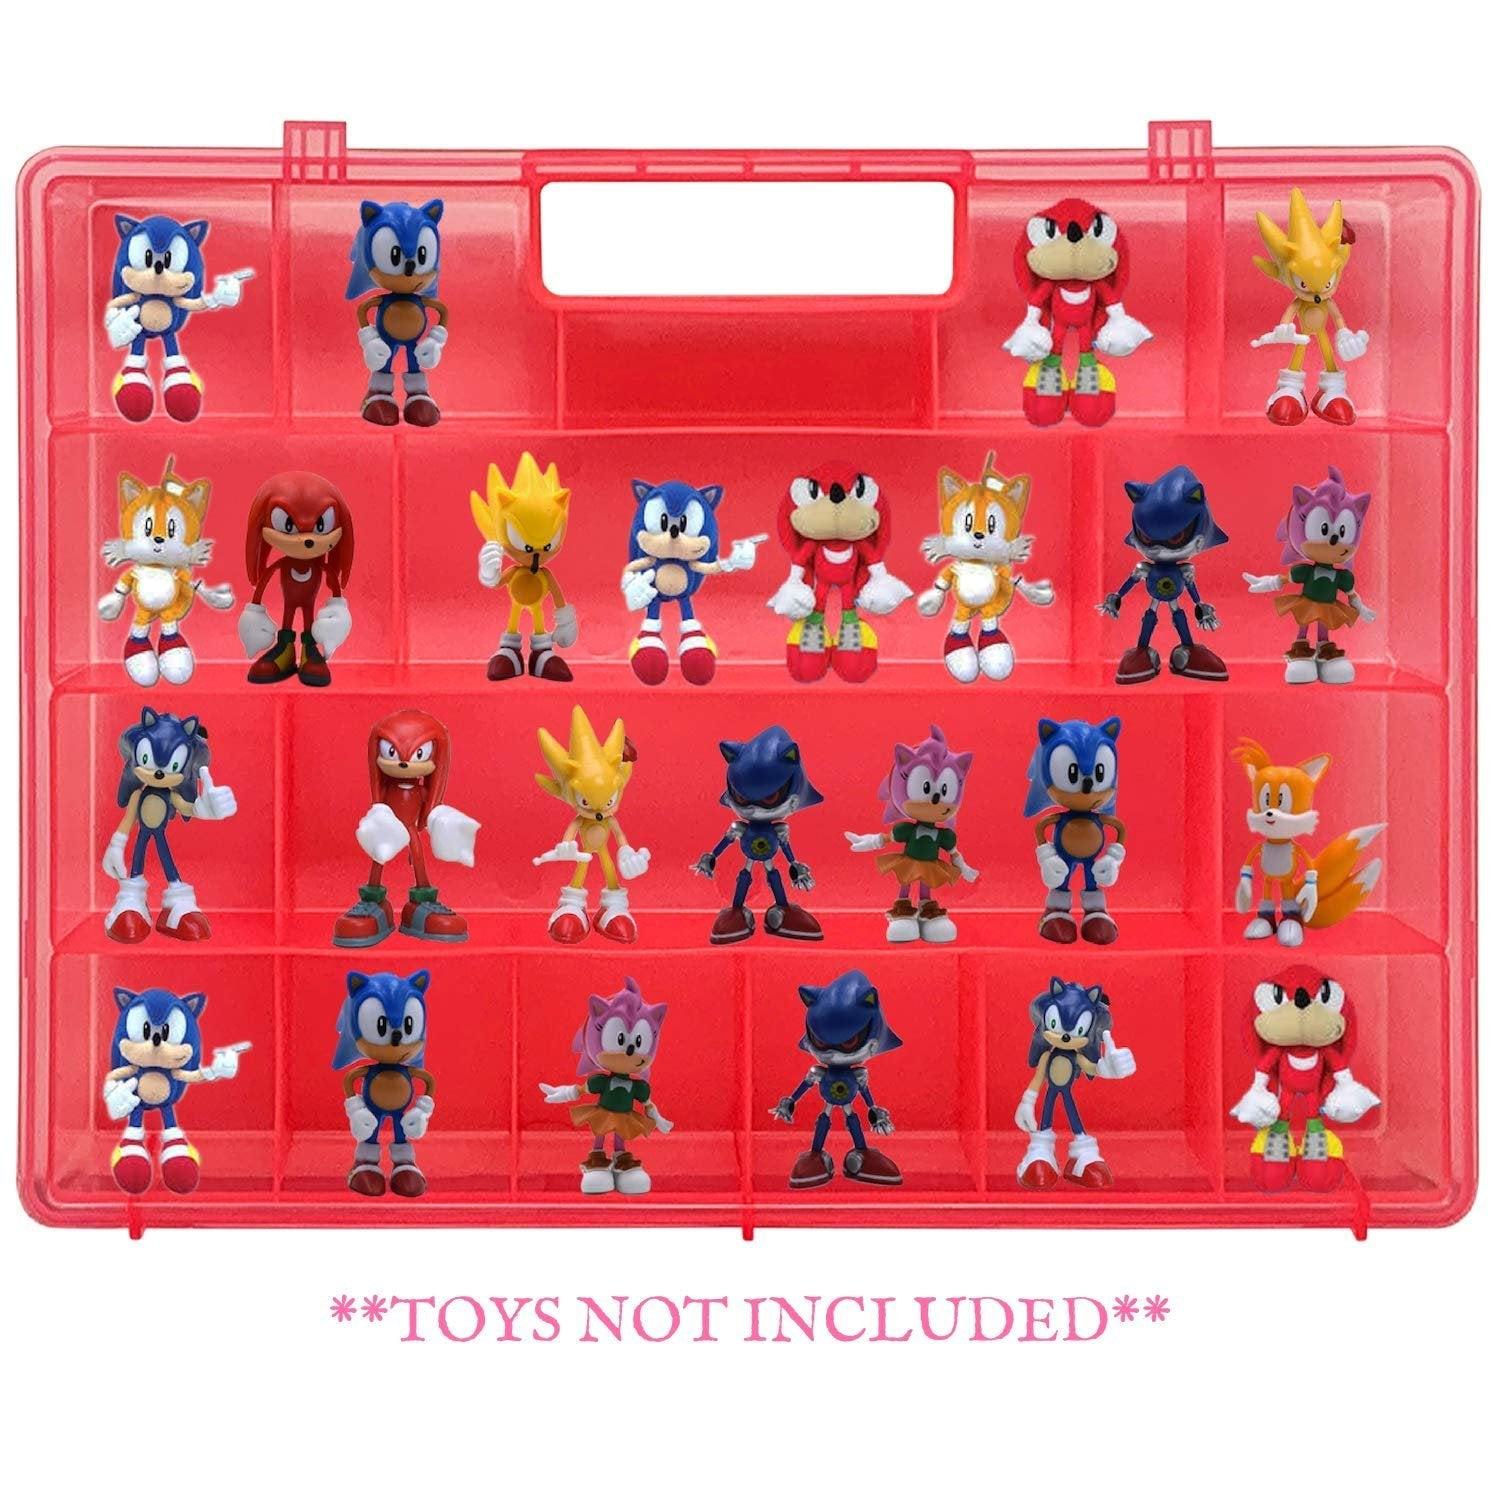 Life Made Better Pink Action Figure Toy Holder Case, Compatible with Sonic The Hedgehog, Stores & Protects Figures & Accessories, Made by LMB